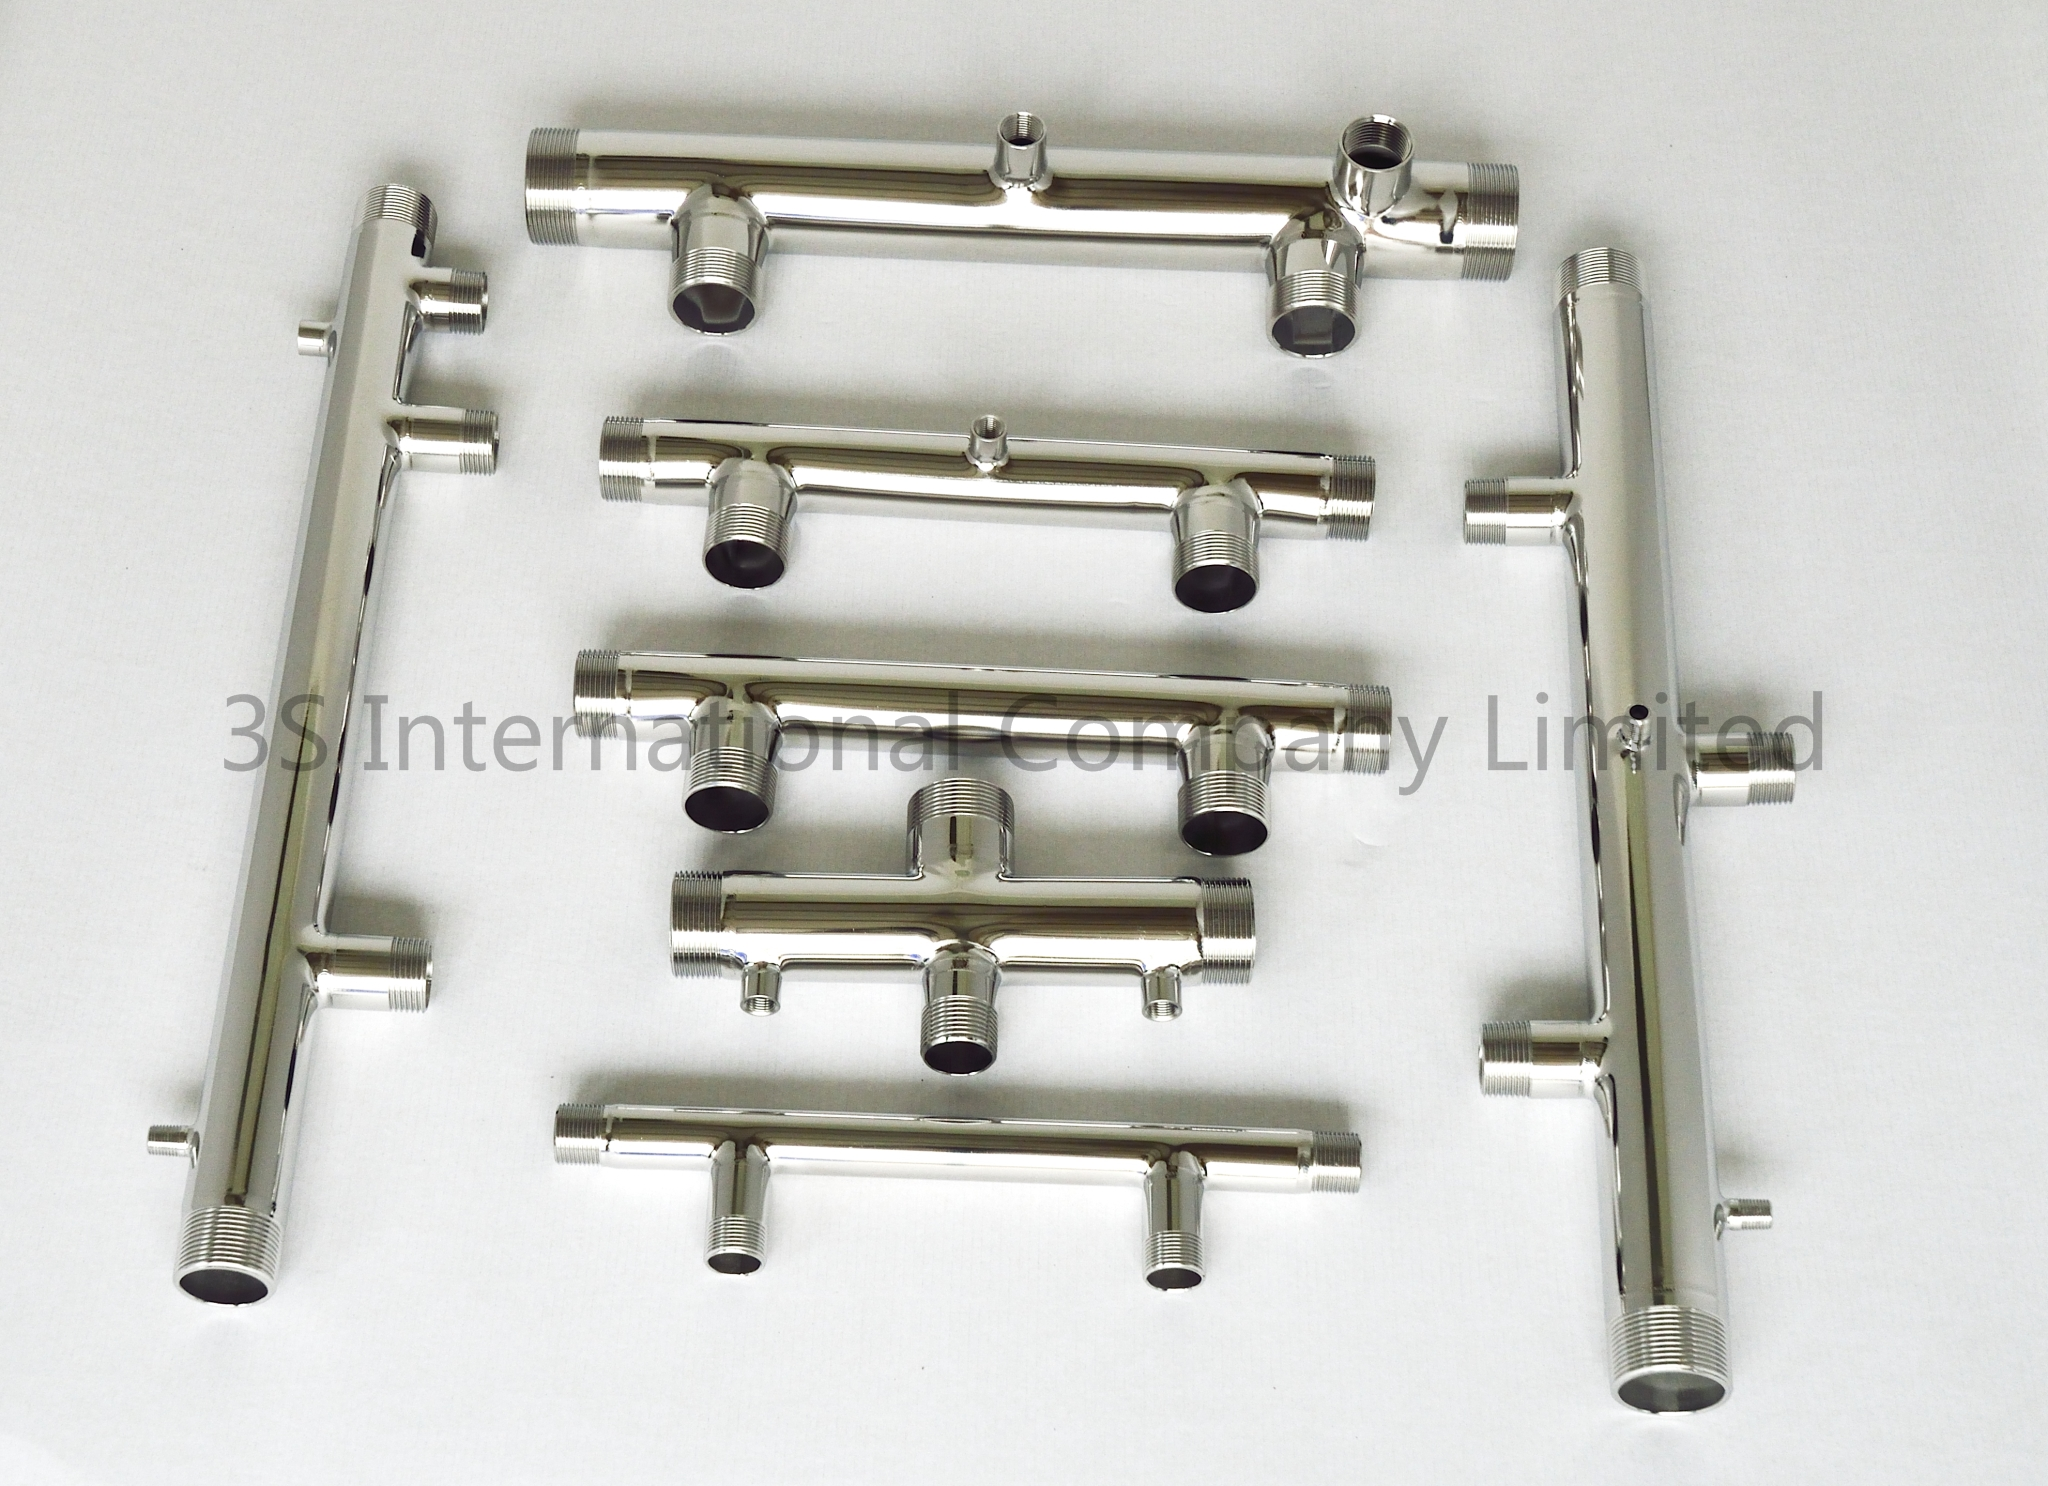 Stainless Steel Manifolds